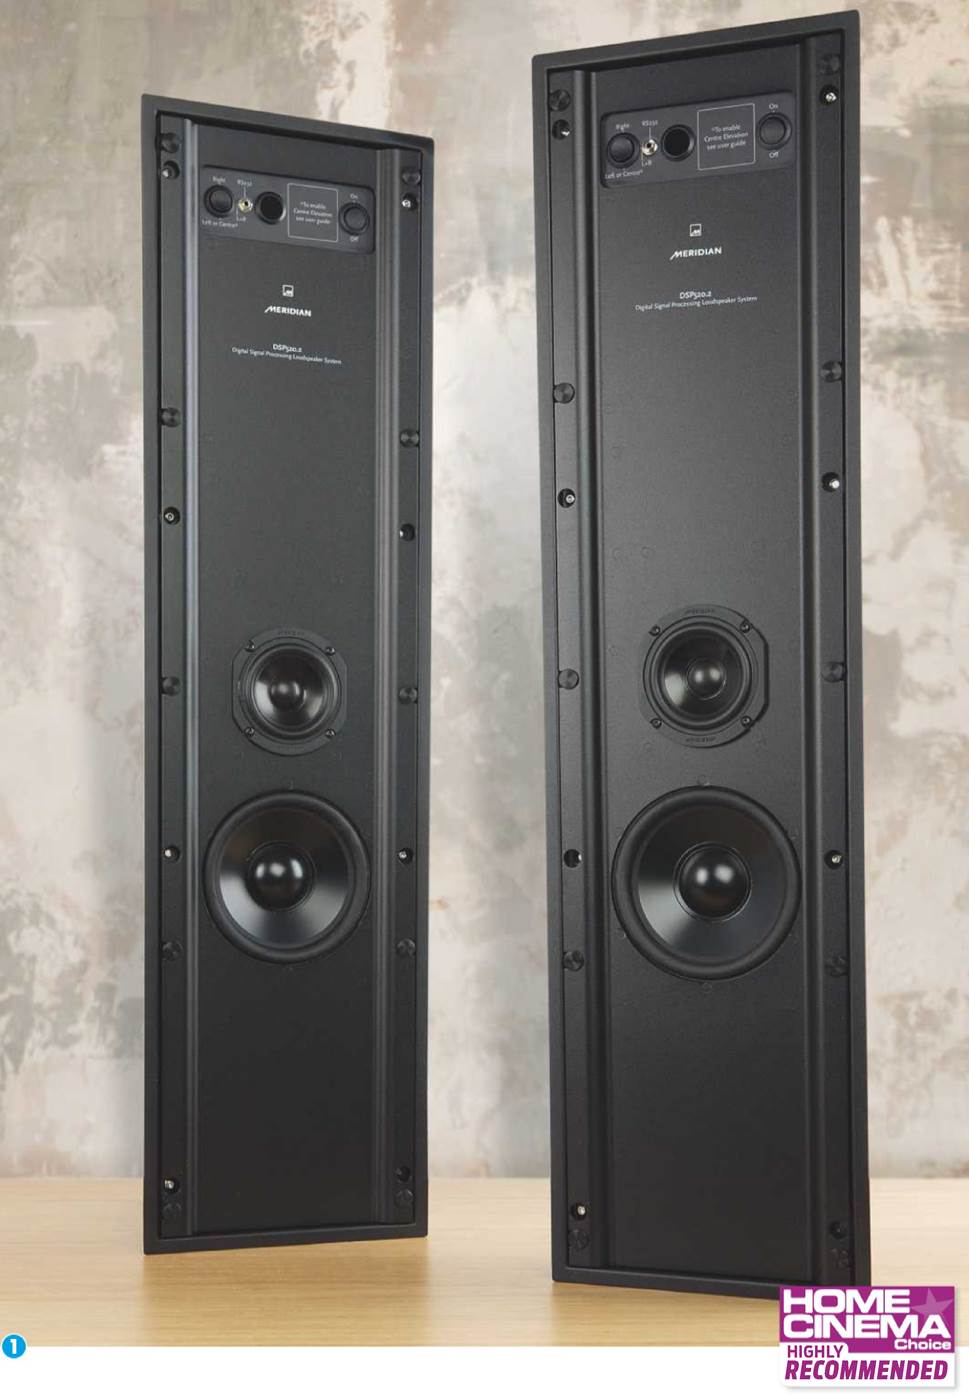 MERIDIAN DSP520.2 Review